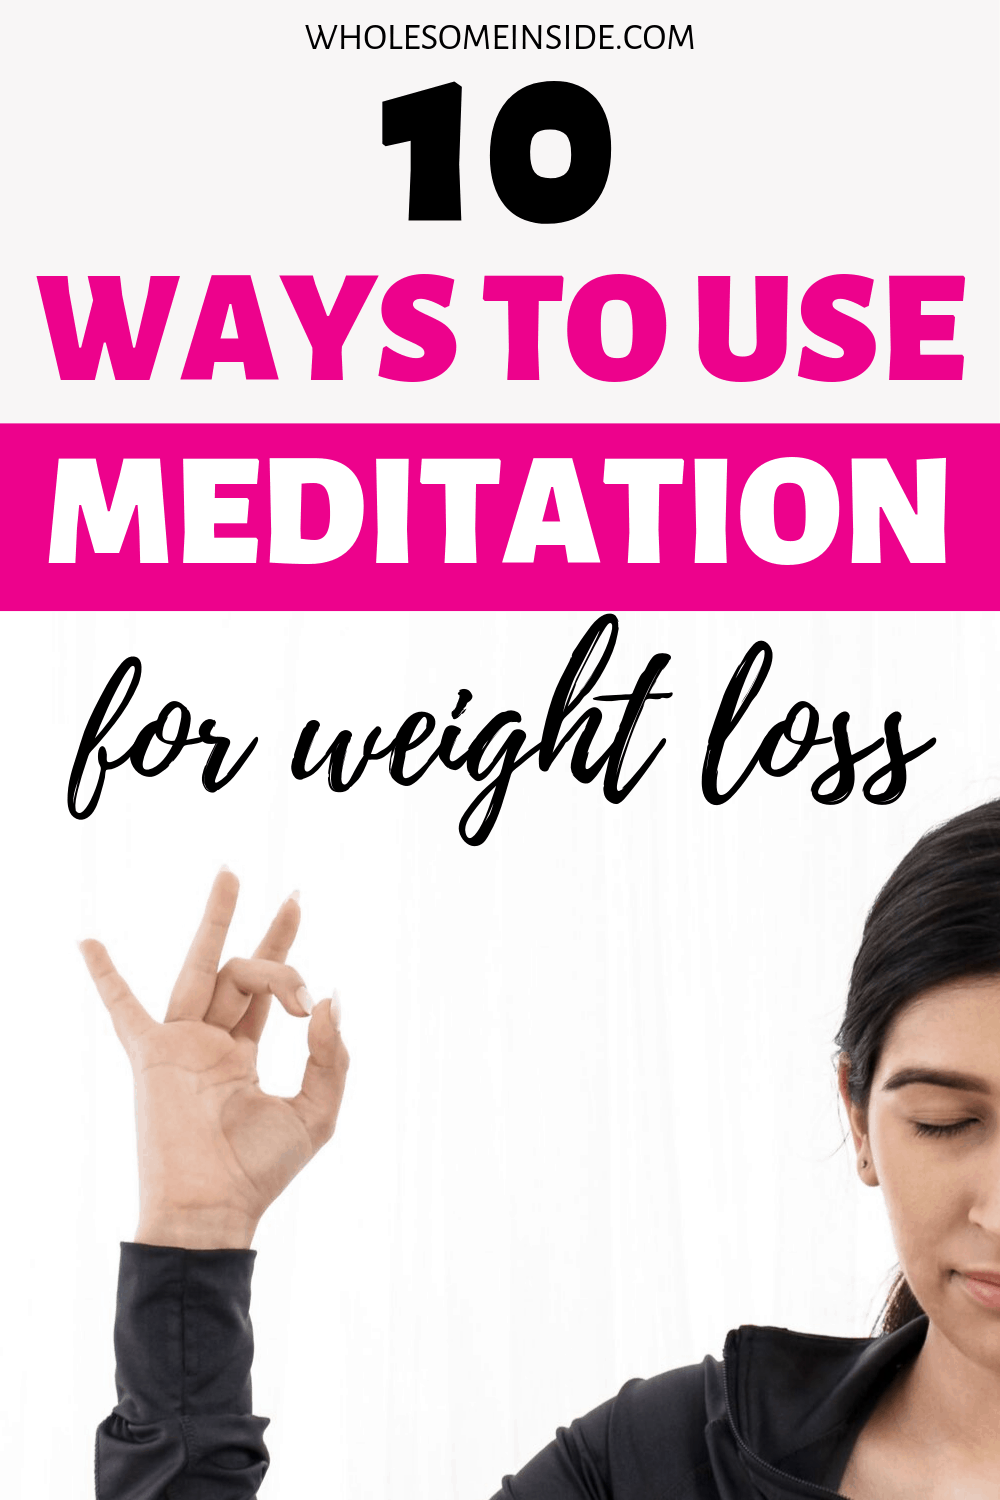 A lady using Meditation for weight loss.